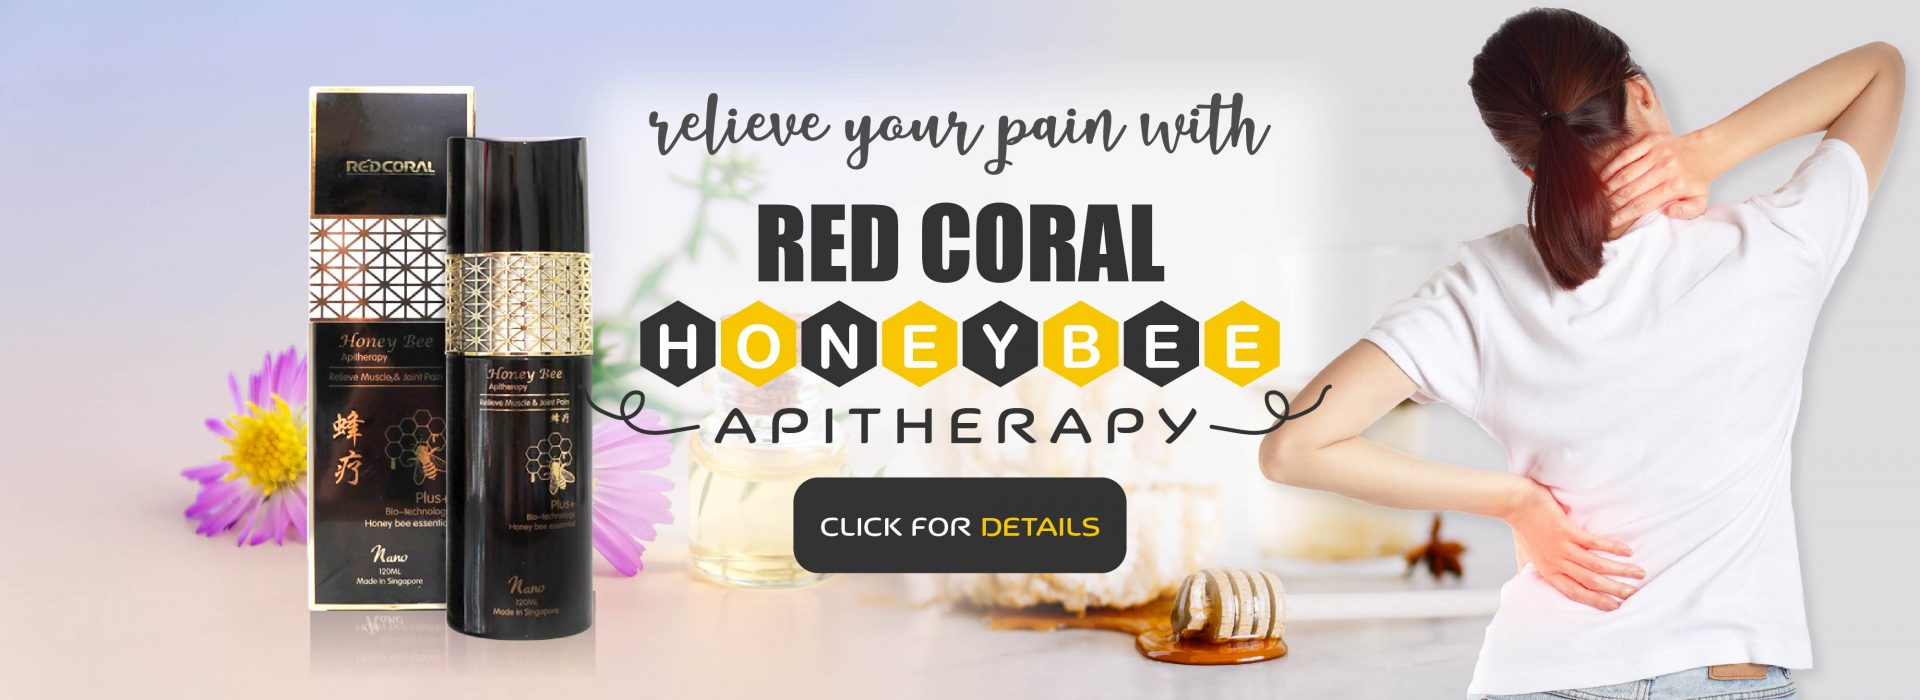 20180907_Red Coral Honeybee Apitherapy-01